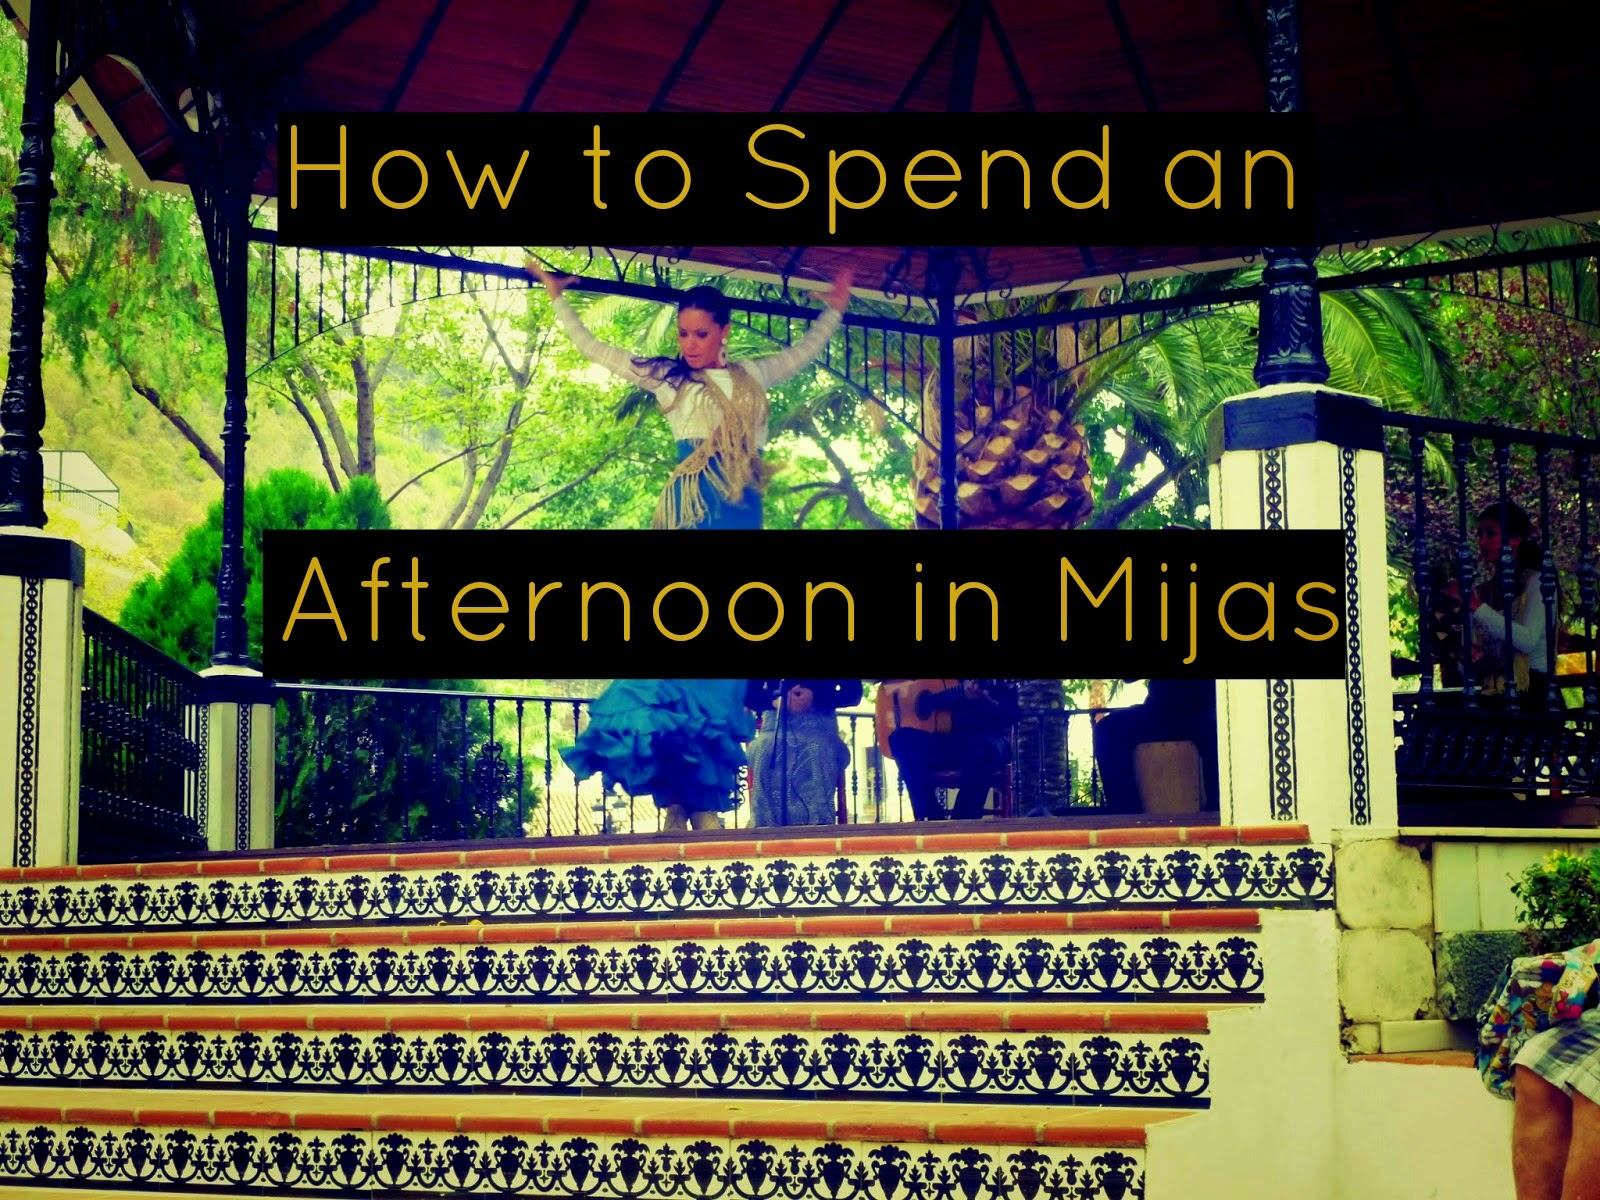 How to spend an afternoon in Mijas